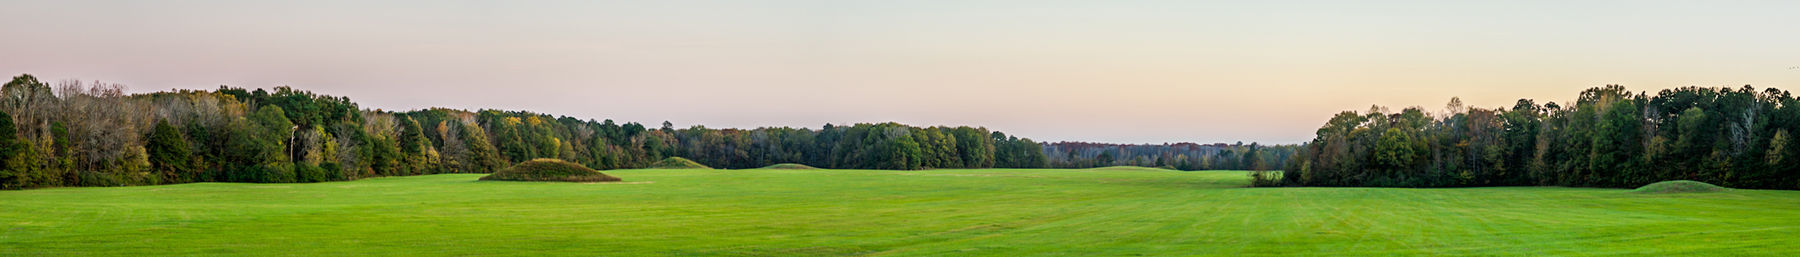 Natchez Trace Parkway banner mounds.jpg